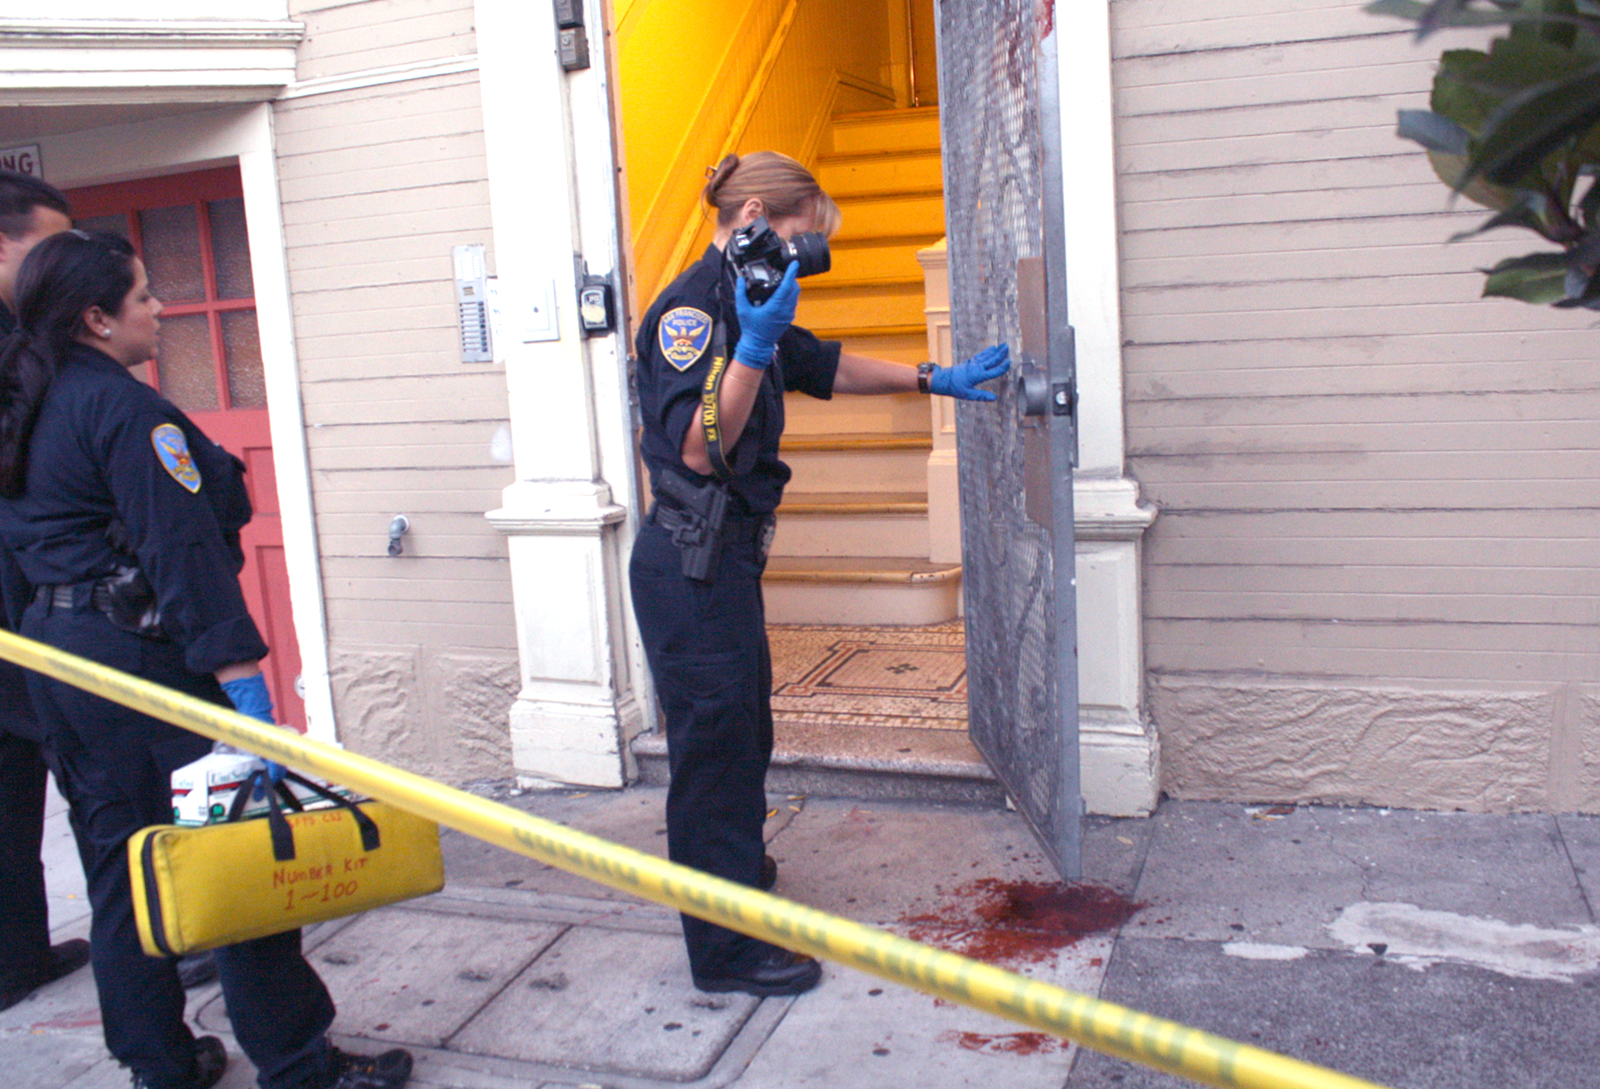 Stabbing on 18th and Capp